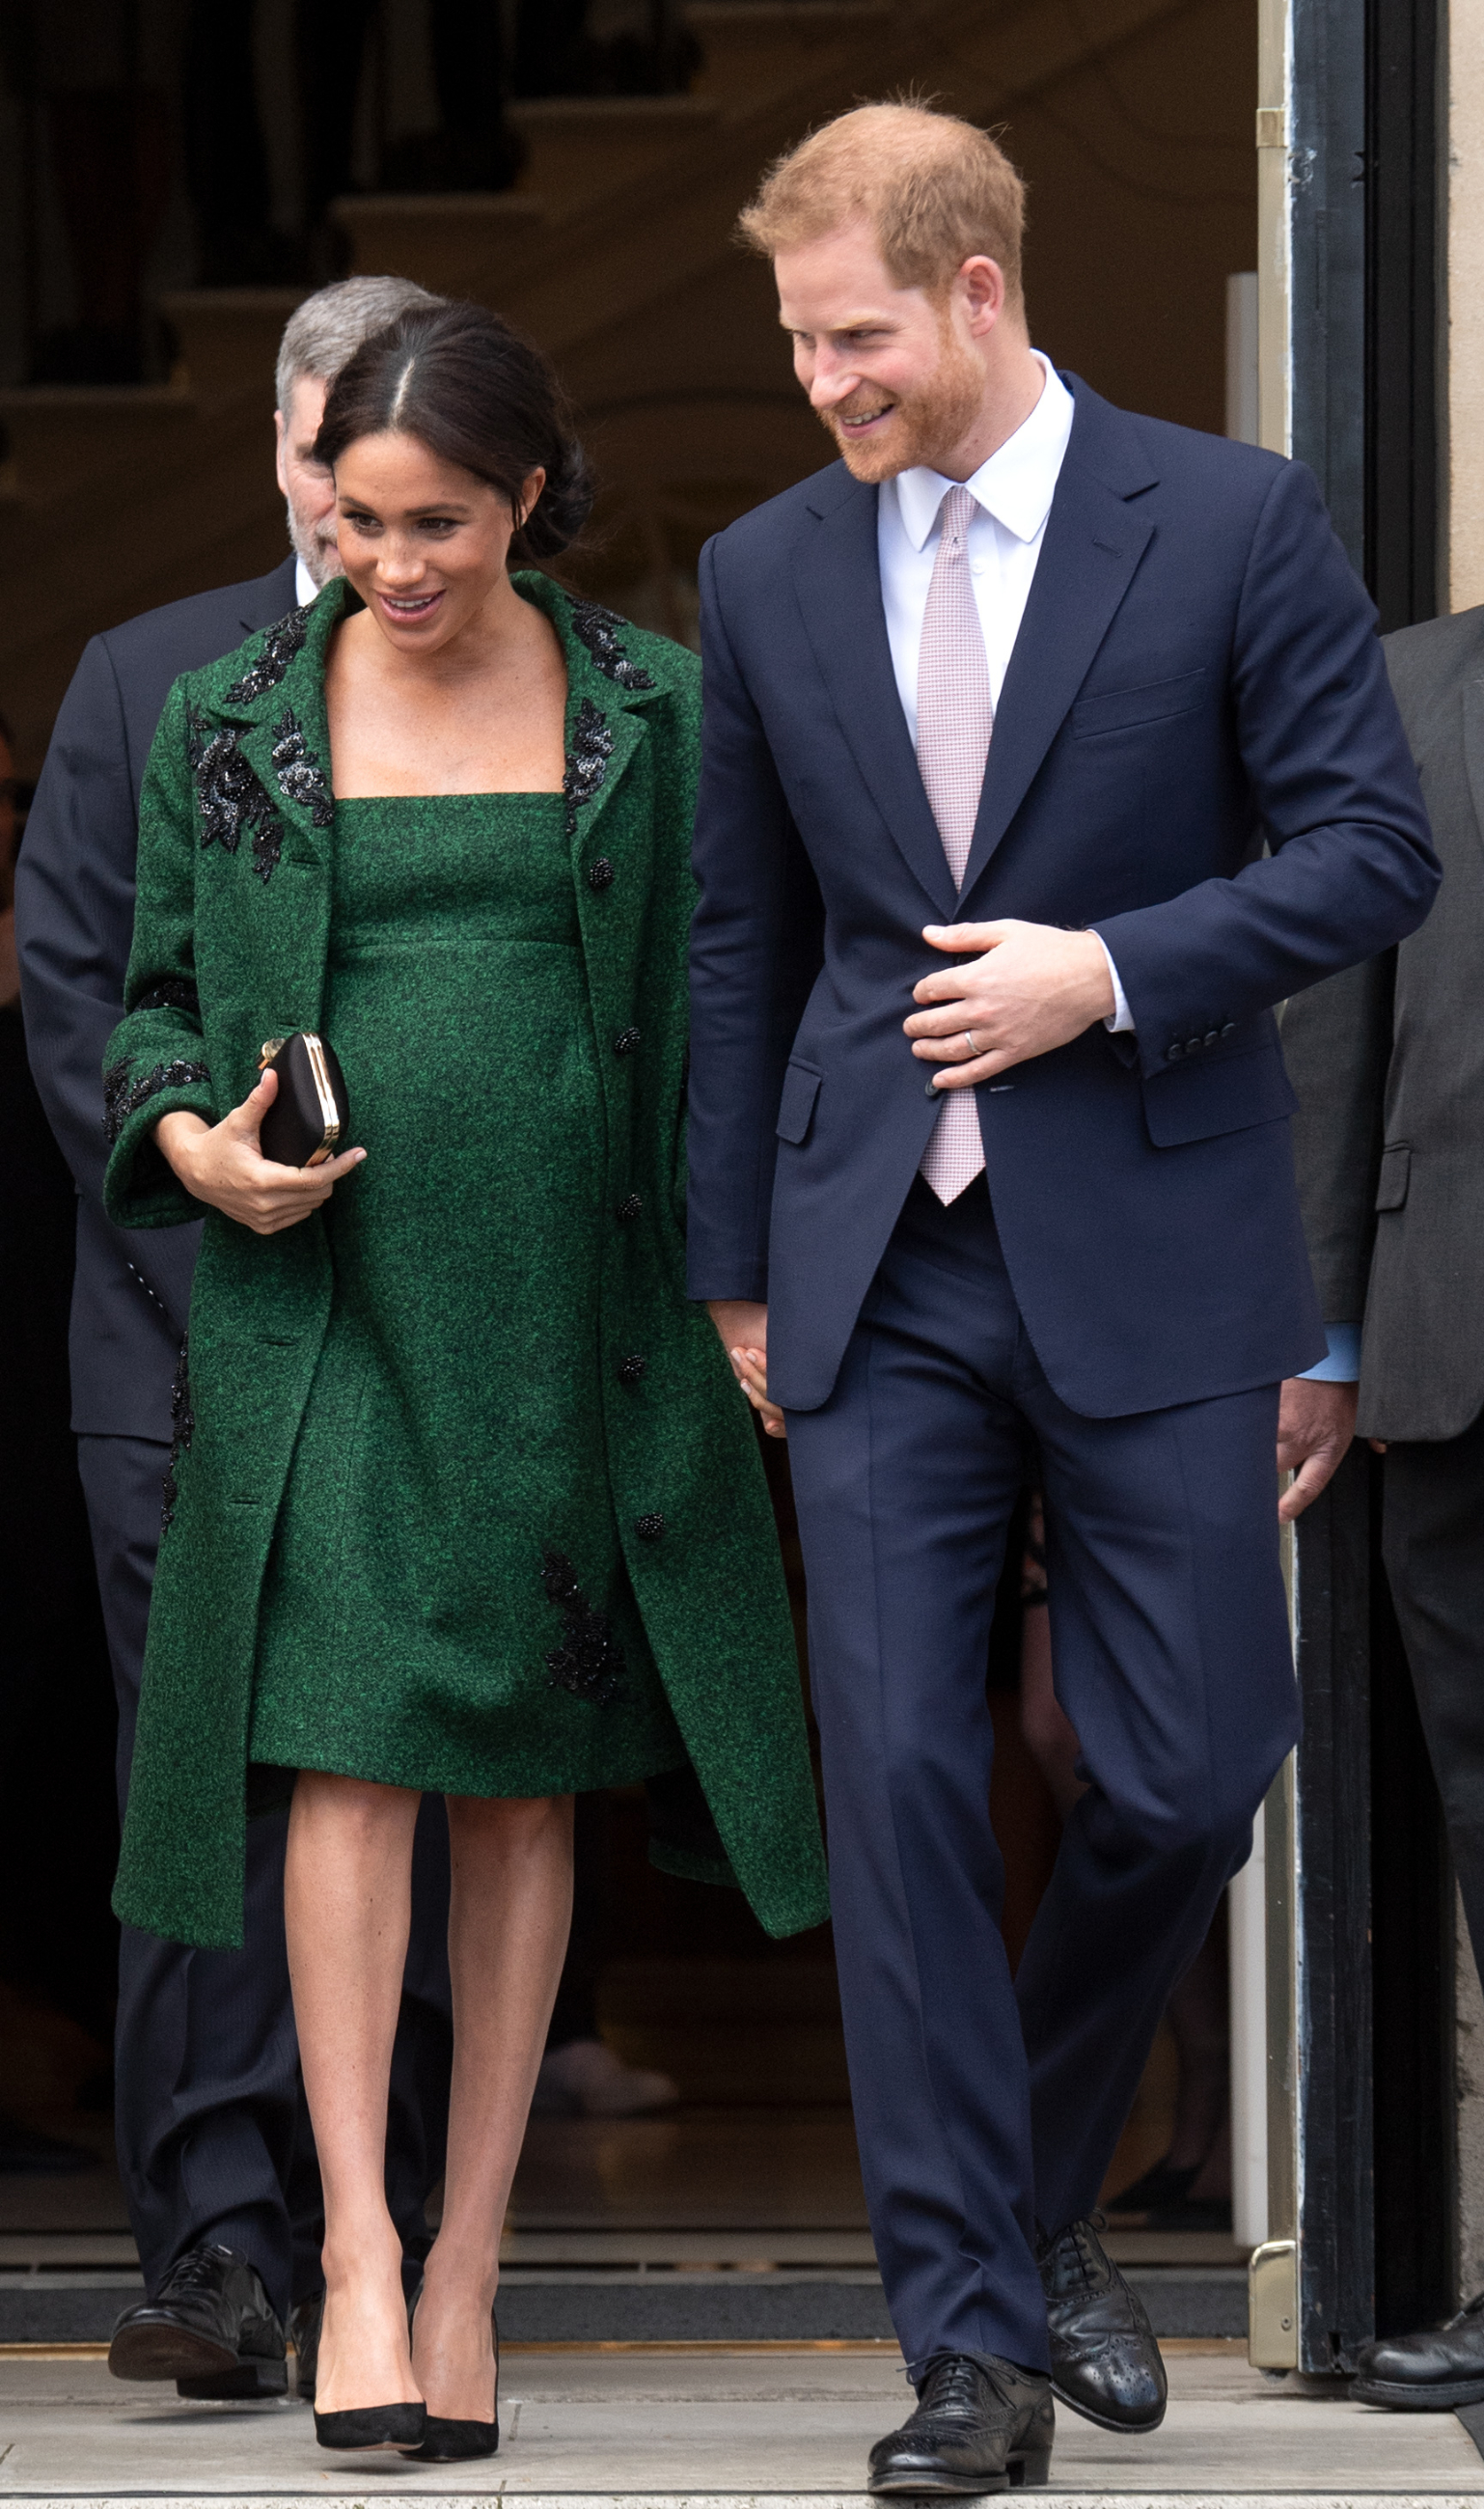 The Duke and Duchess of Sussex wearing a green Erdem coat and dress,  attend a Commonwealth Day youth event at Canada House in London on March 11, 2019.,Image: 418886672, License: Rights-managed, Restrictions: , Model Release: no, Credit line: Anwar Hussein / PA Images / Profimedia